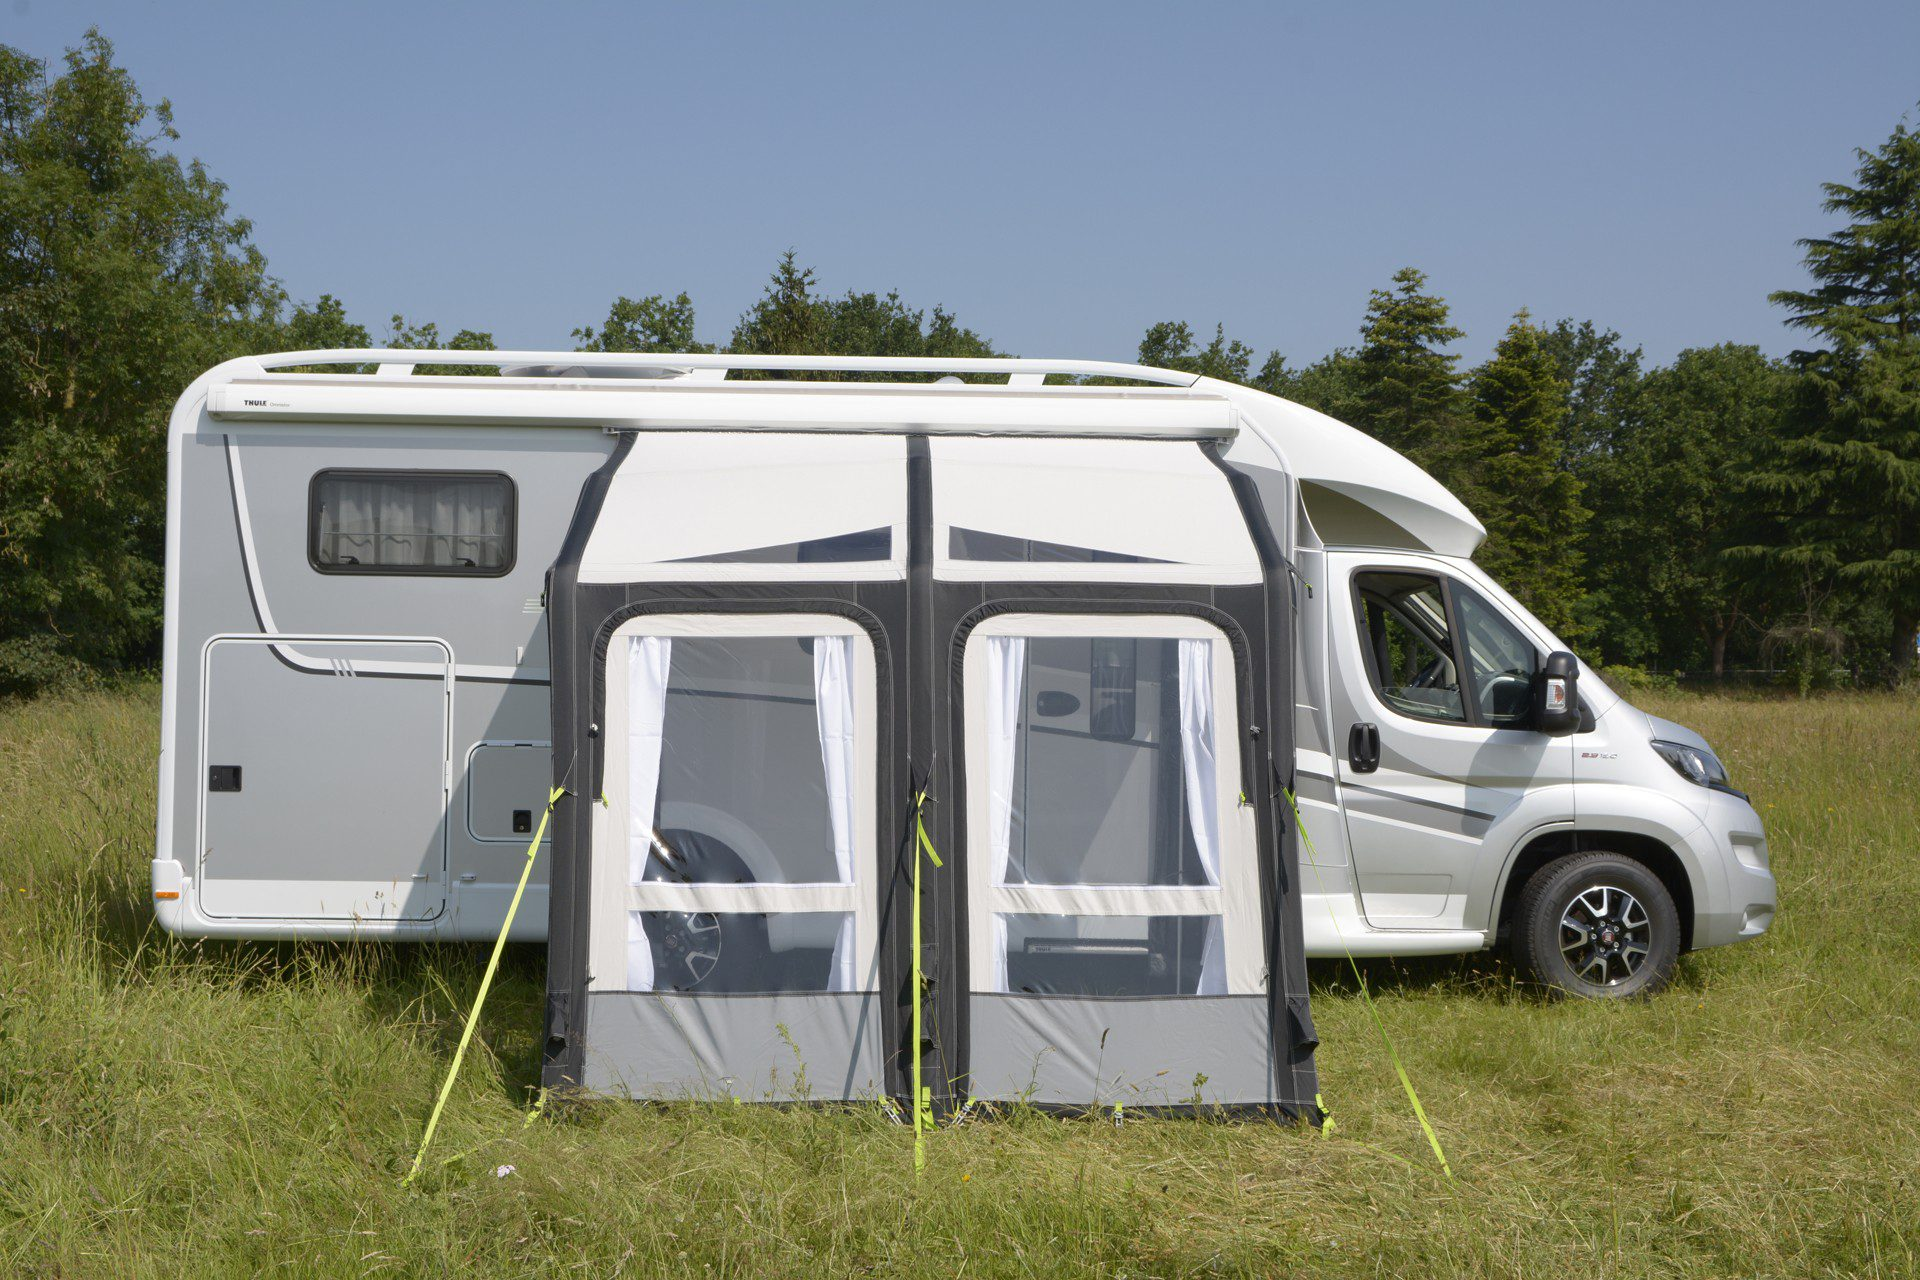 Kampa Motor Rally Air Pro 260 Motor Home Awning 2019 4